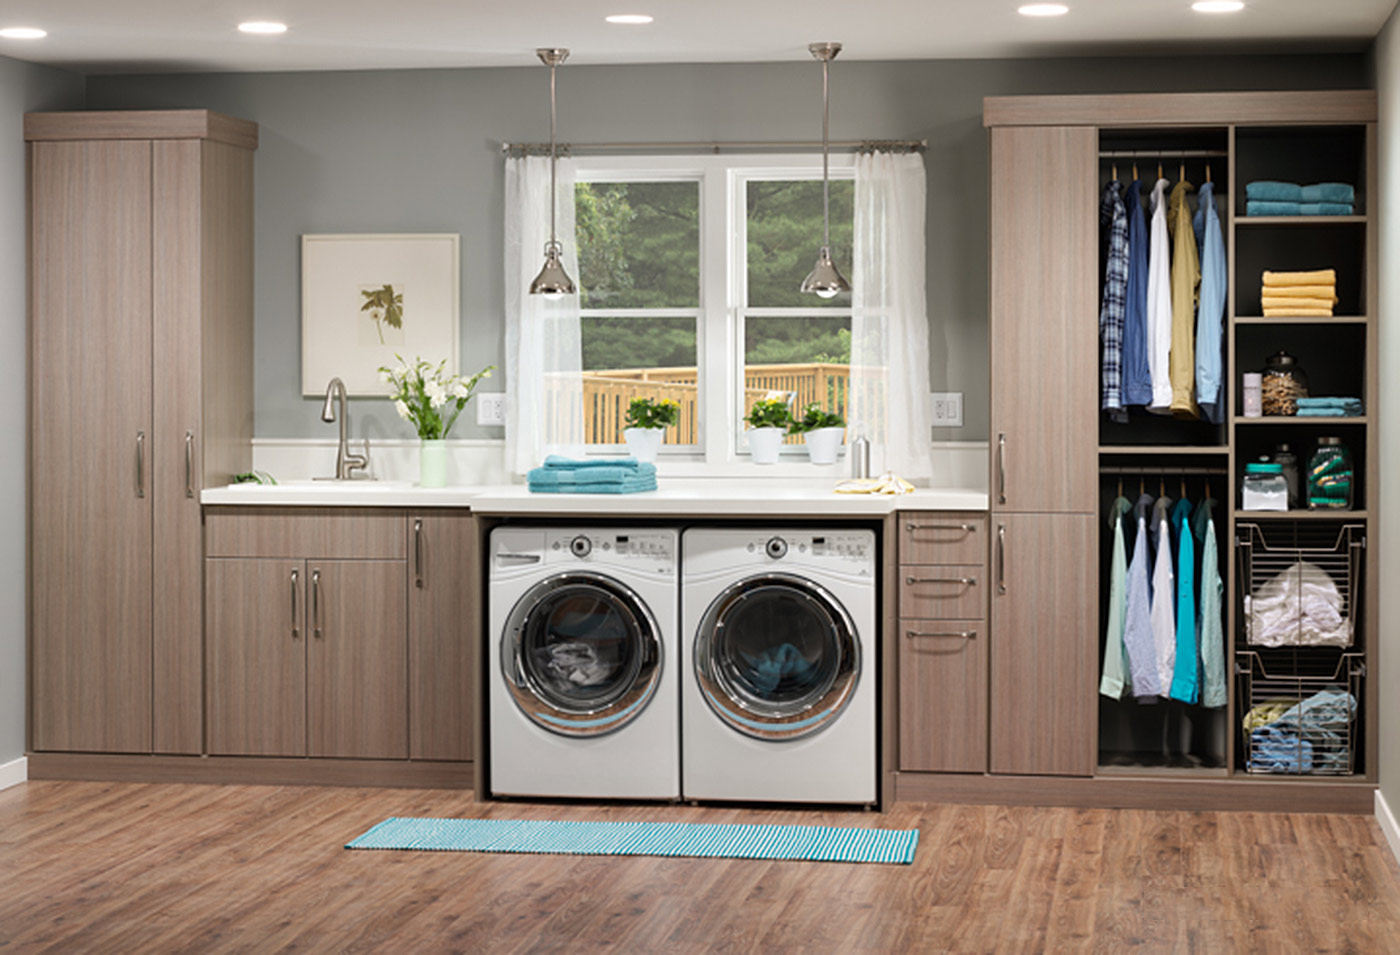 Laundry room cabinet accessories innovate home org for Laundry home